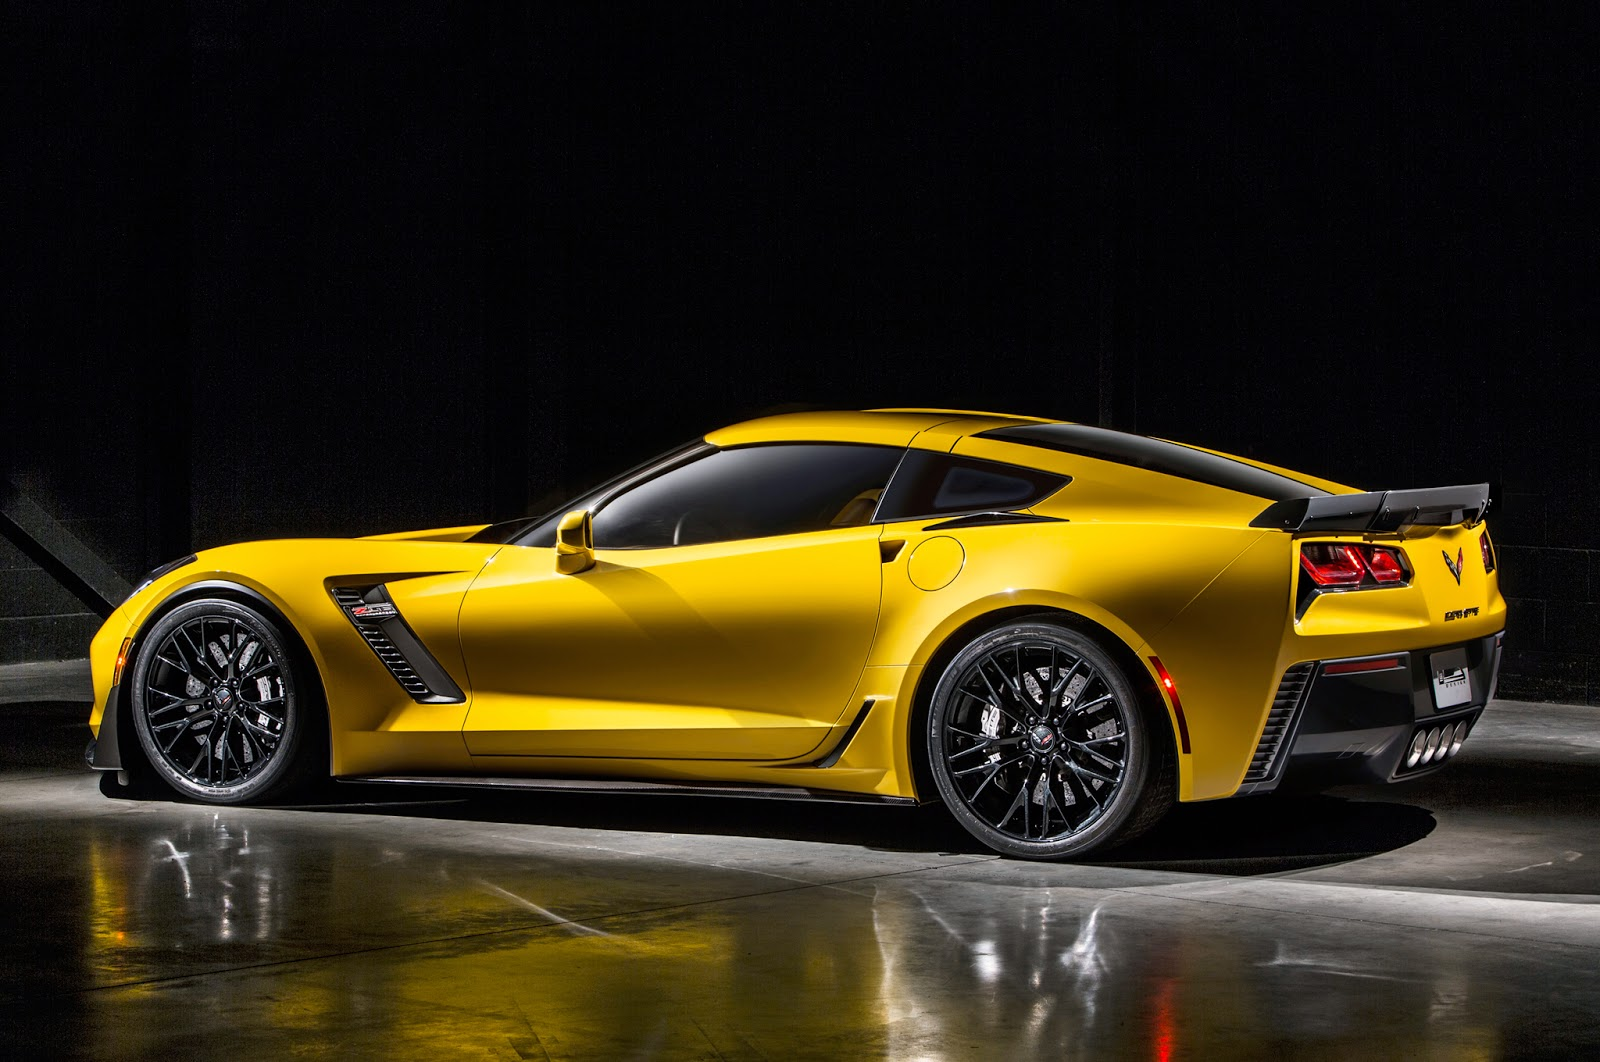 Corvette to get 30 mpg with 8 speed transmission